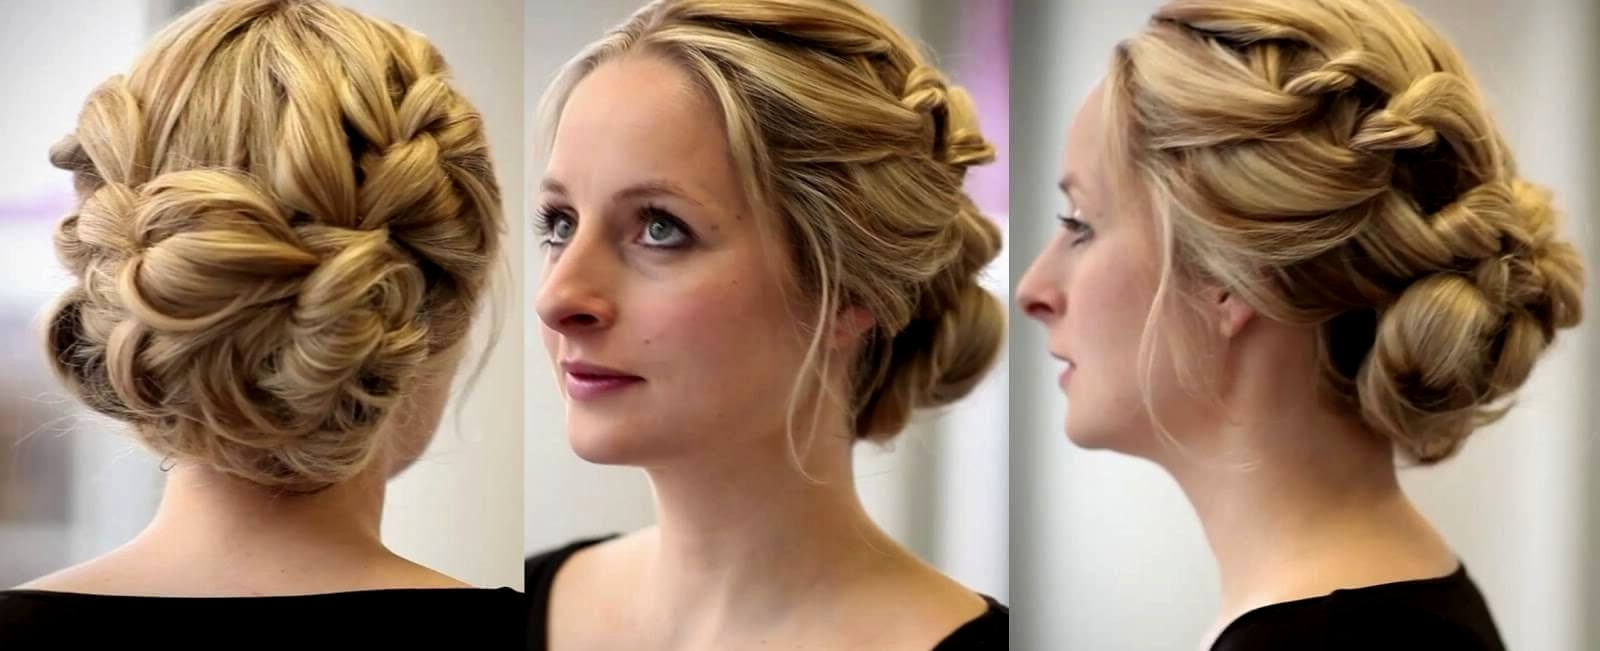 Well Known Cute Wedding Hairstyles For Junior Bridesmaids Intended For Wedding Hairstyles Junior Bridesmaids (View 15 of 15)